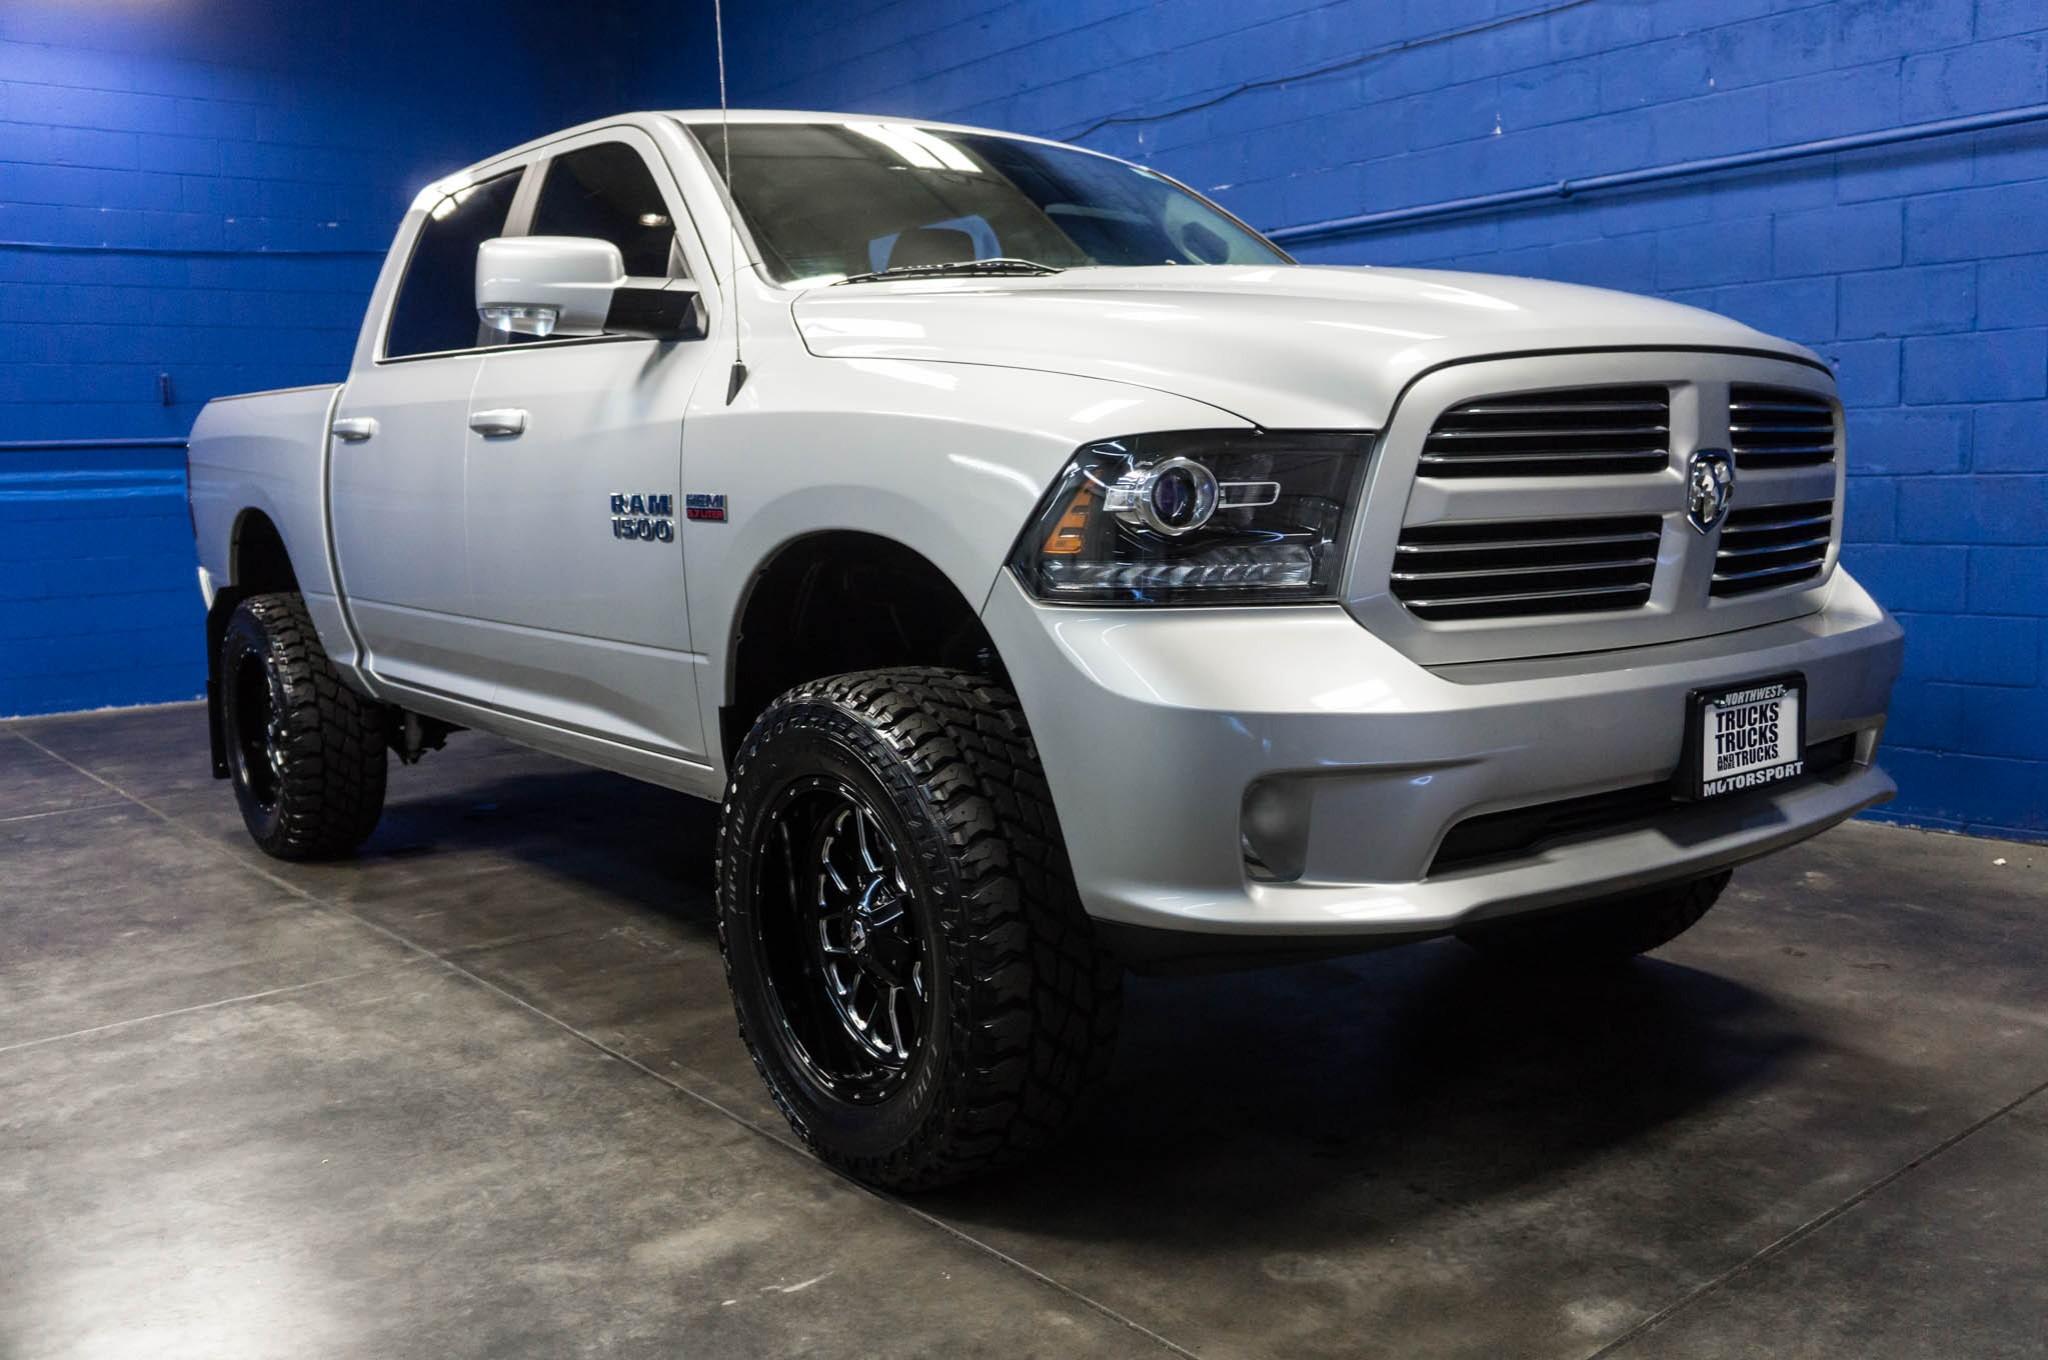 used lifted 2016 dodge ram 1500 sport 4x4 truck for sale. Black Bedroom Furniture Sets. Home Design Ideas